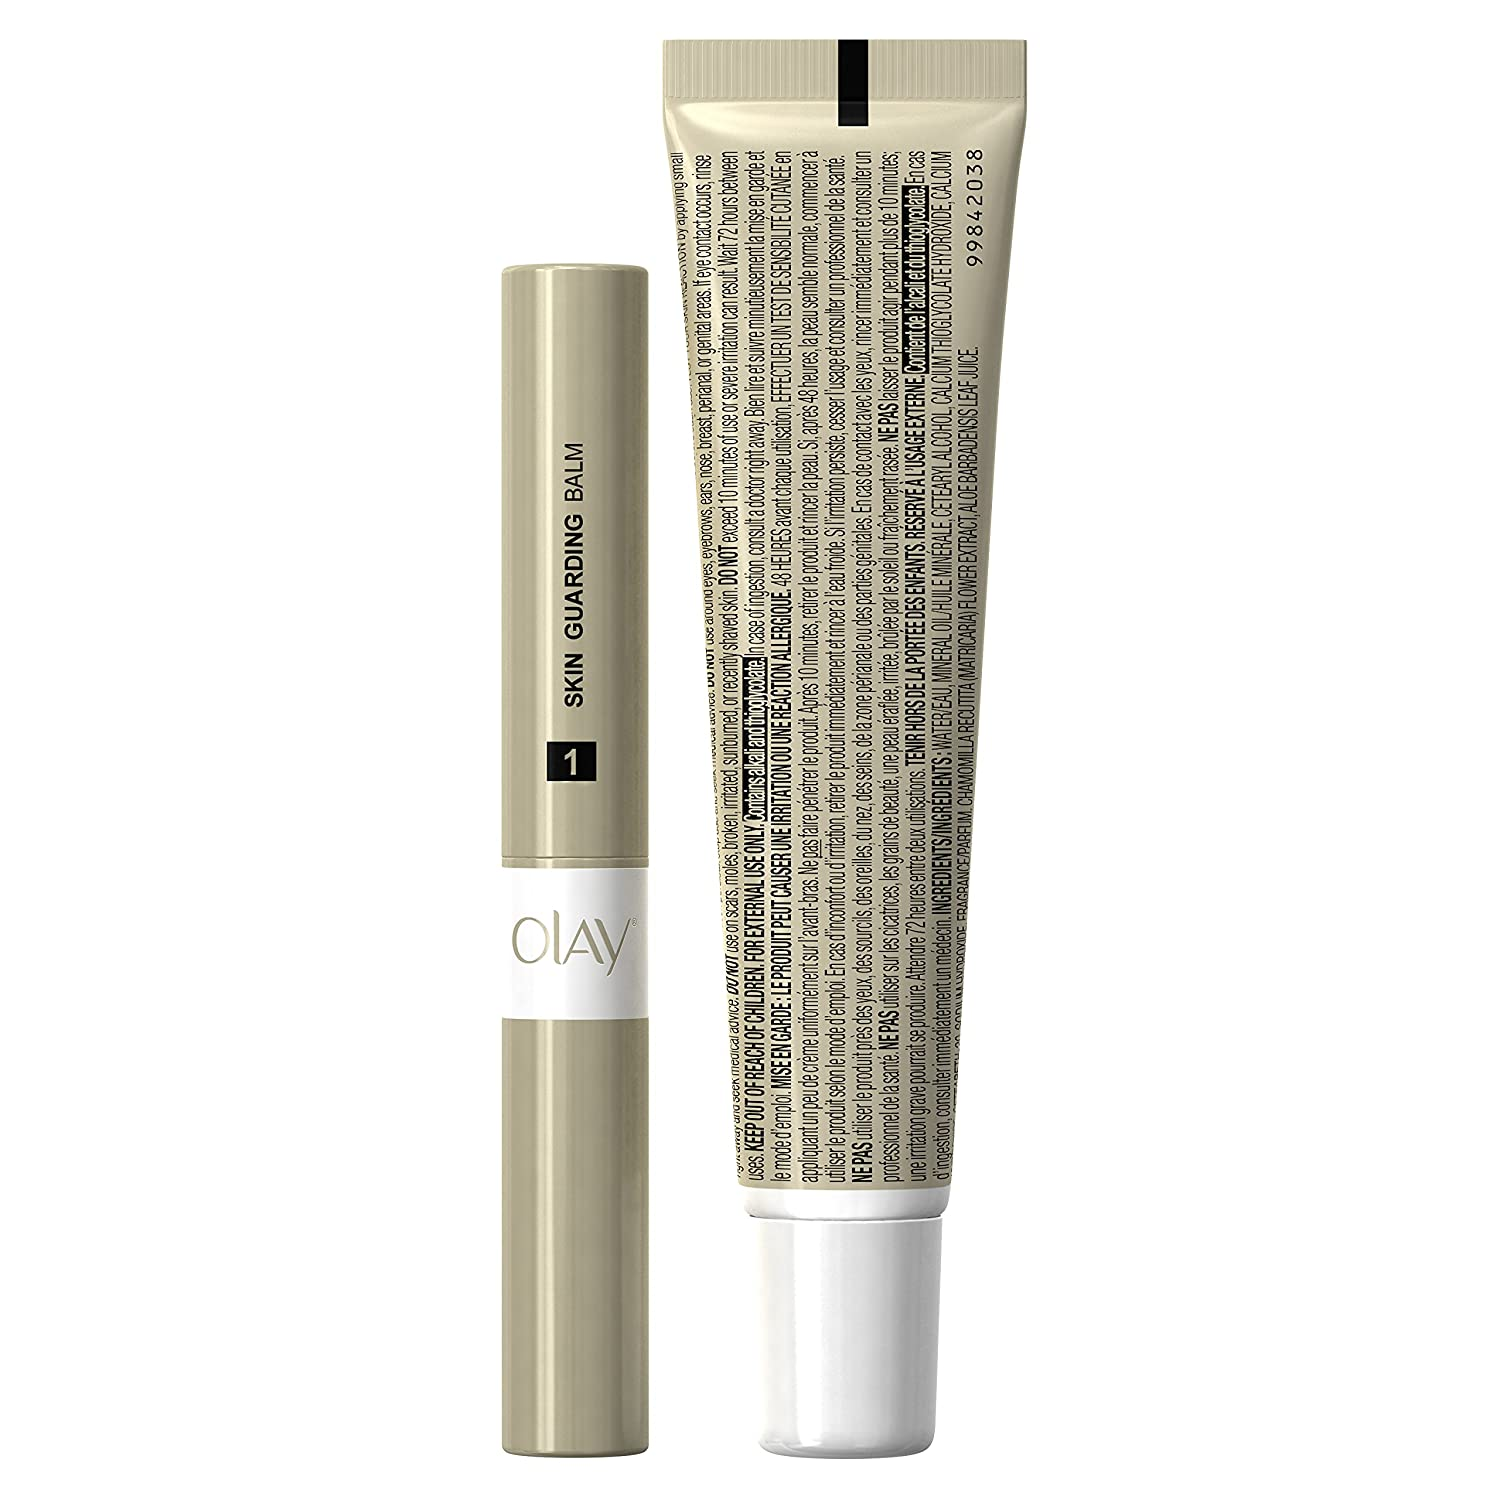 Crema depilatoria facial olay